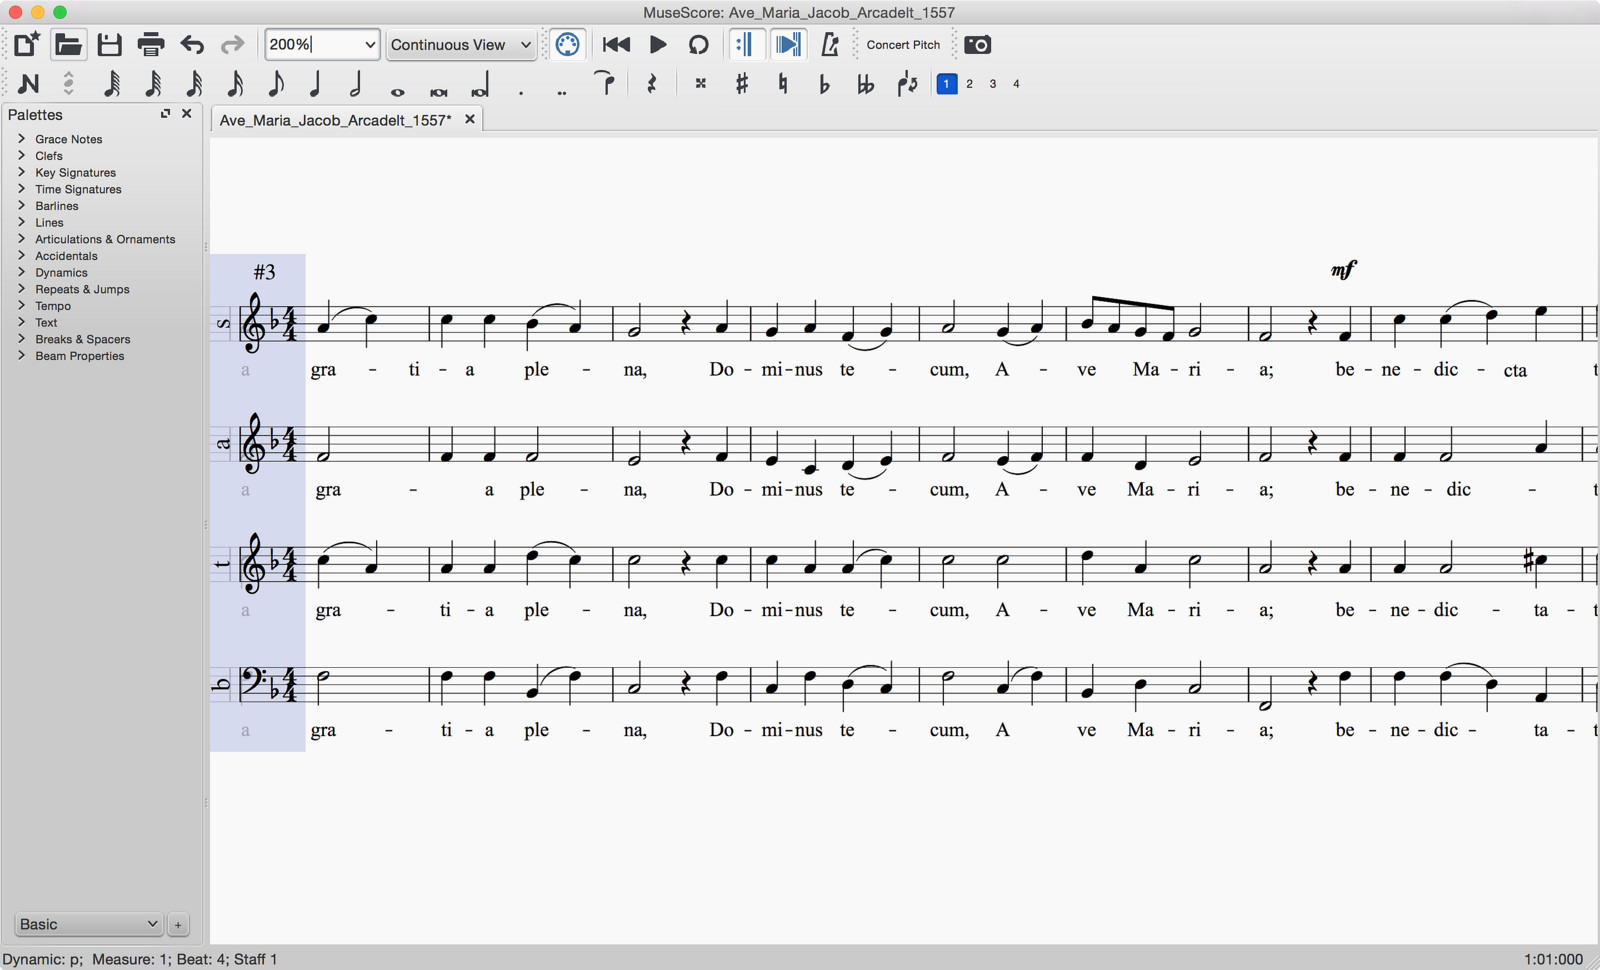 A score in Continuous view, new in MuseScore 2.0